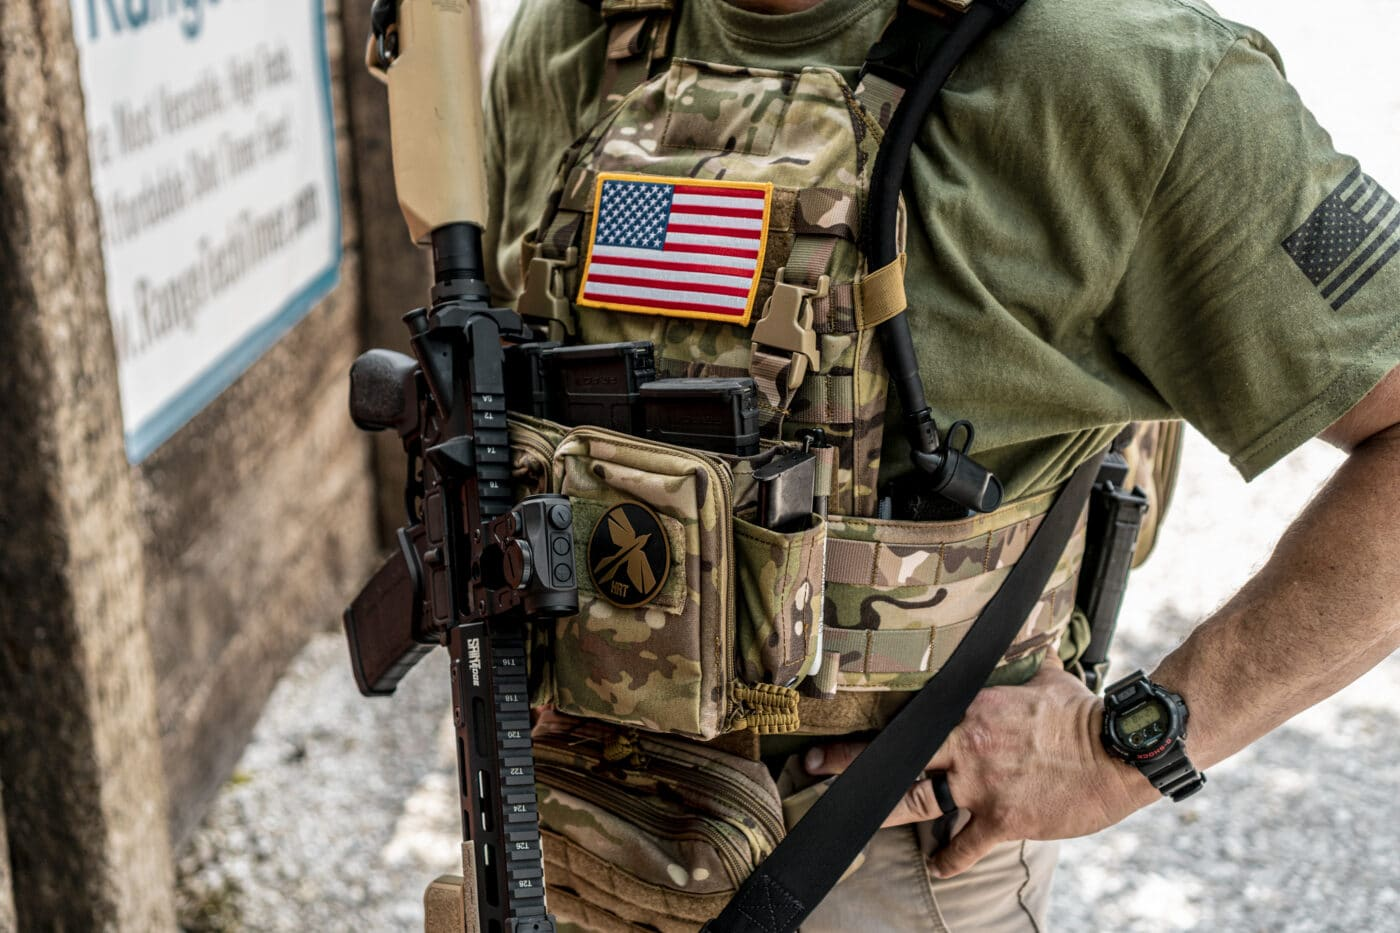 RAC Plate Carrier in camo color being worn by a man